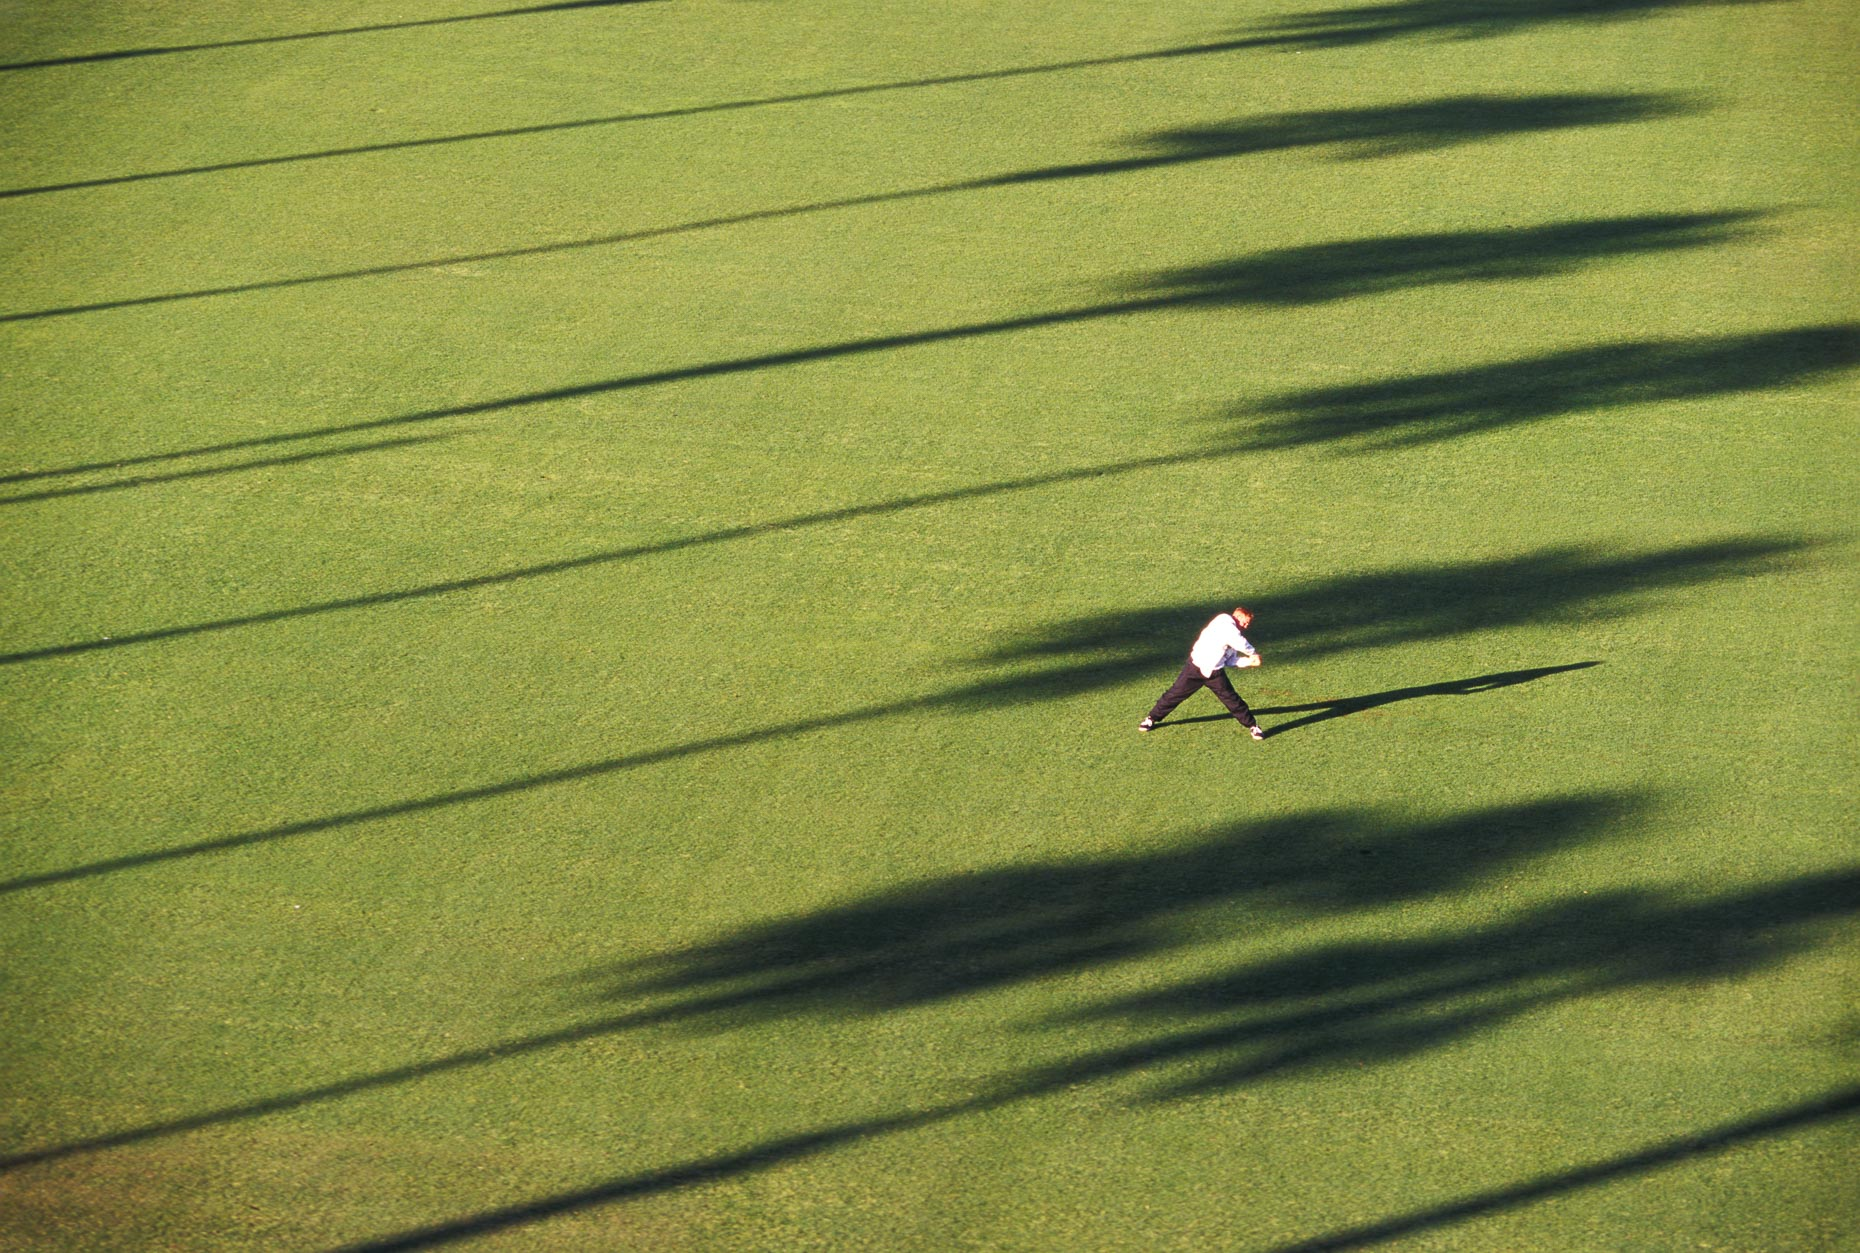 Person doing work out stretch on grass lawn with shadows of palm trees. Fitness. David Zaitz Photography.